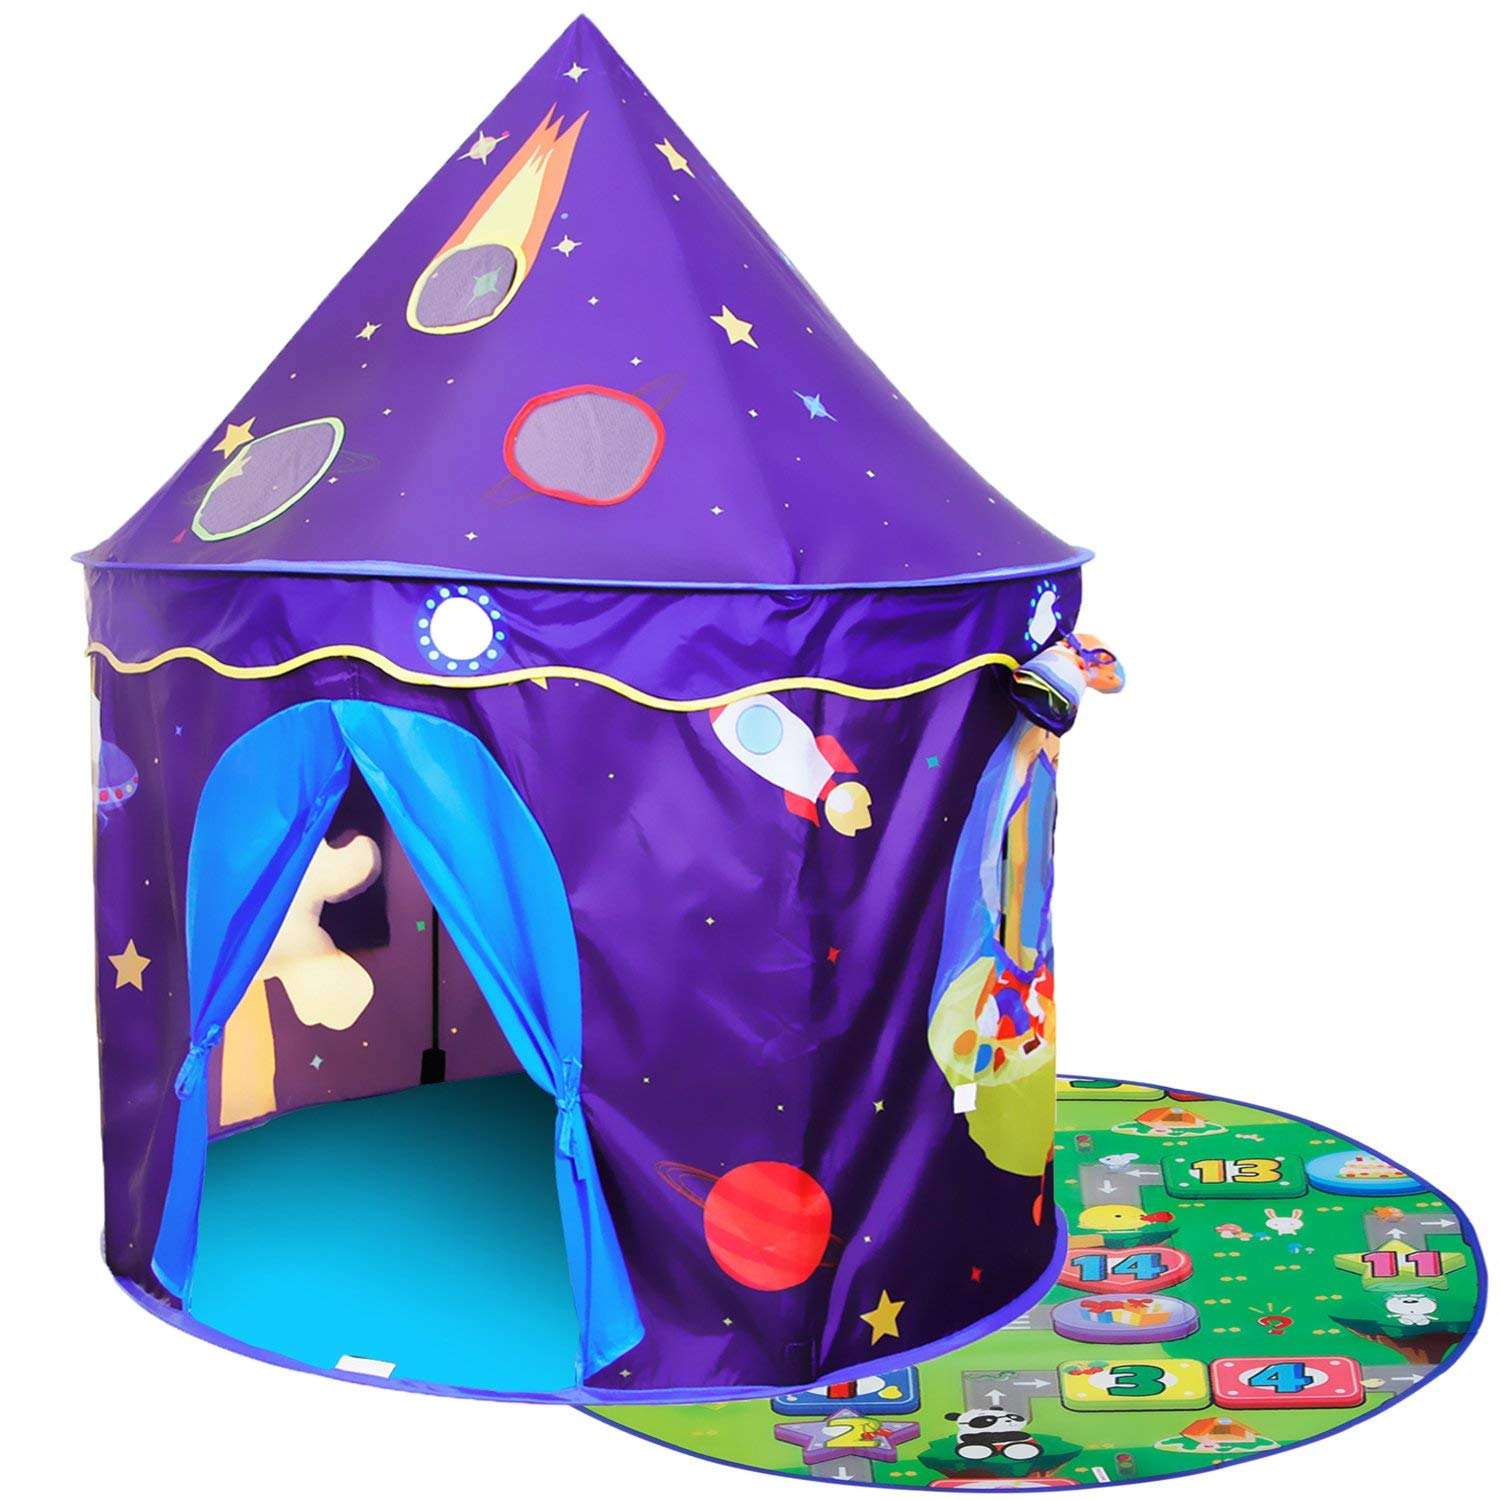 ALPIKA Play Tent Kids Toy Children Space Castle with Mat As Best Gift for Boys Girls for Toddler Playing